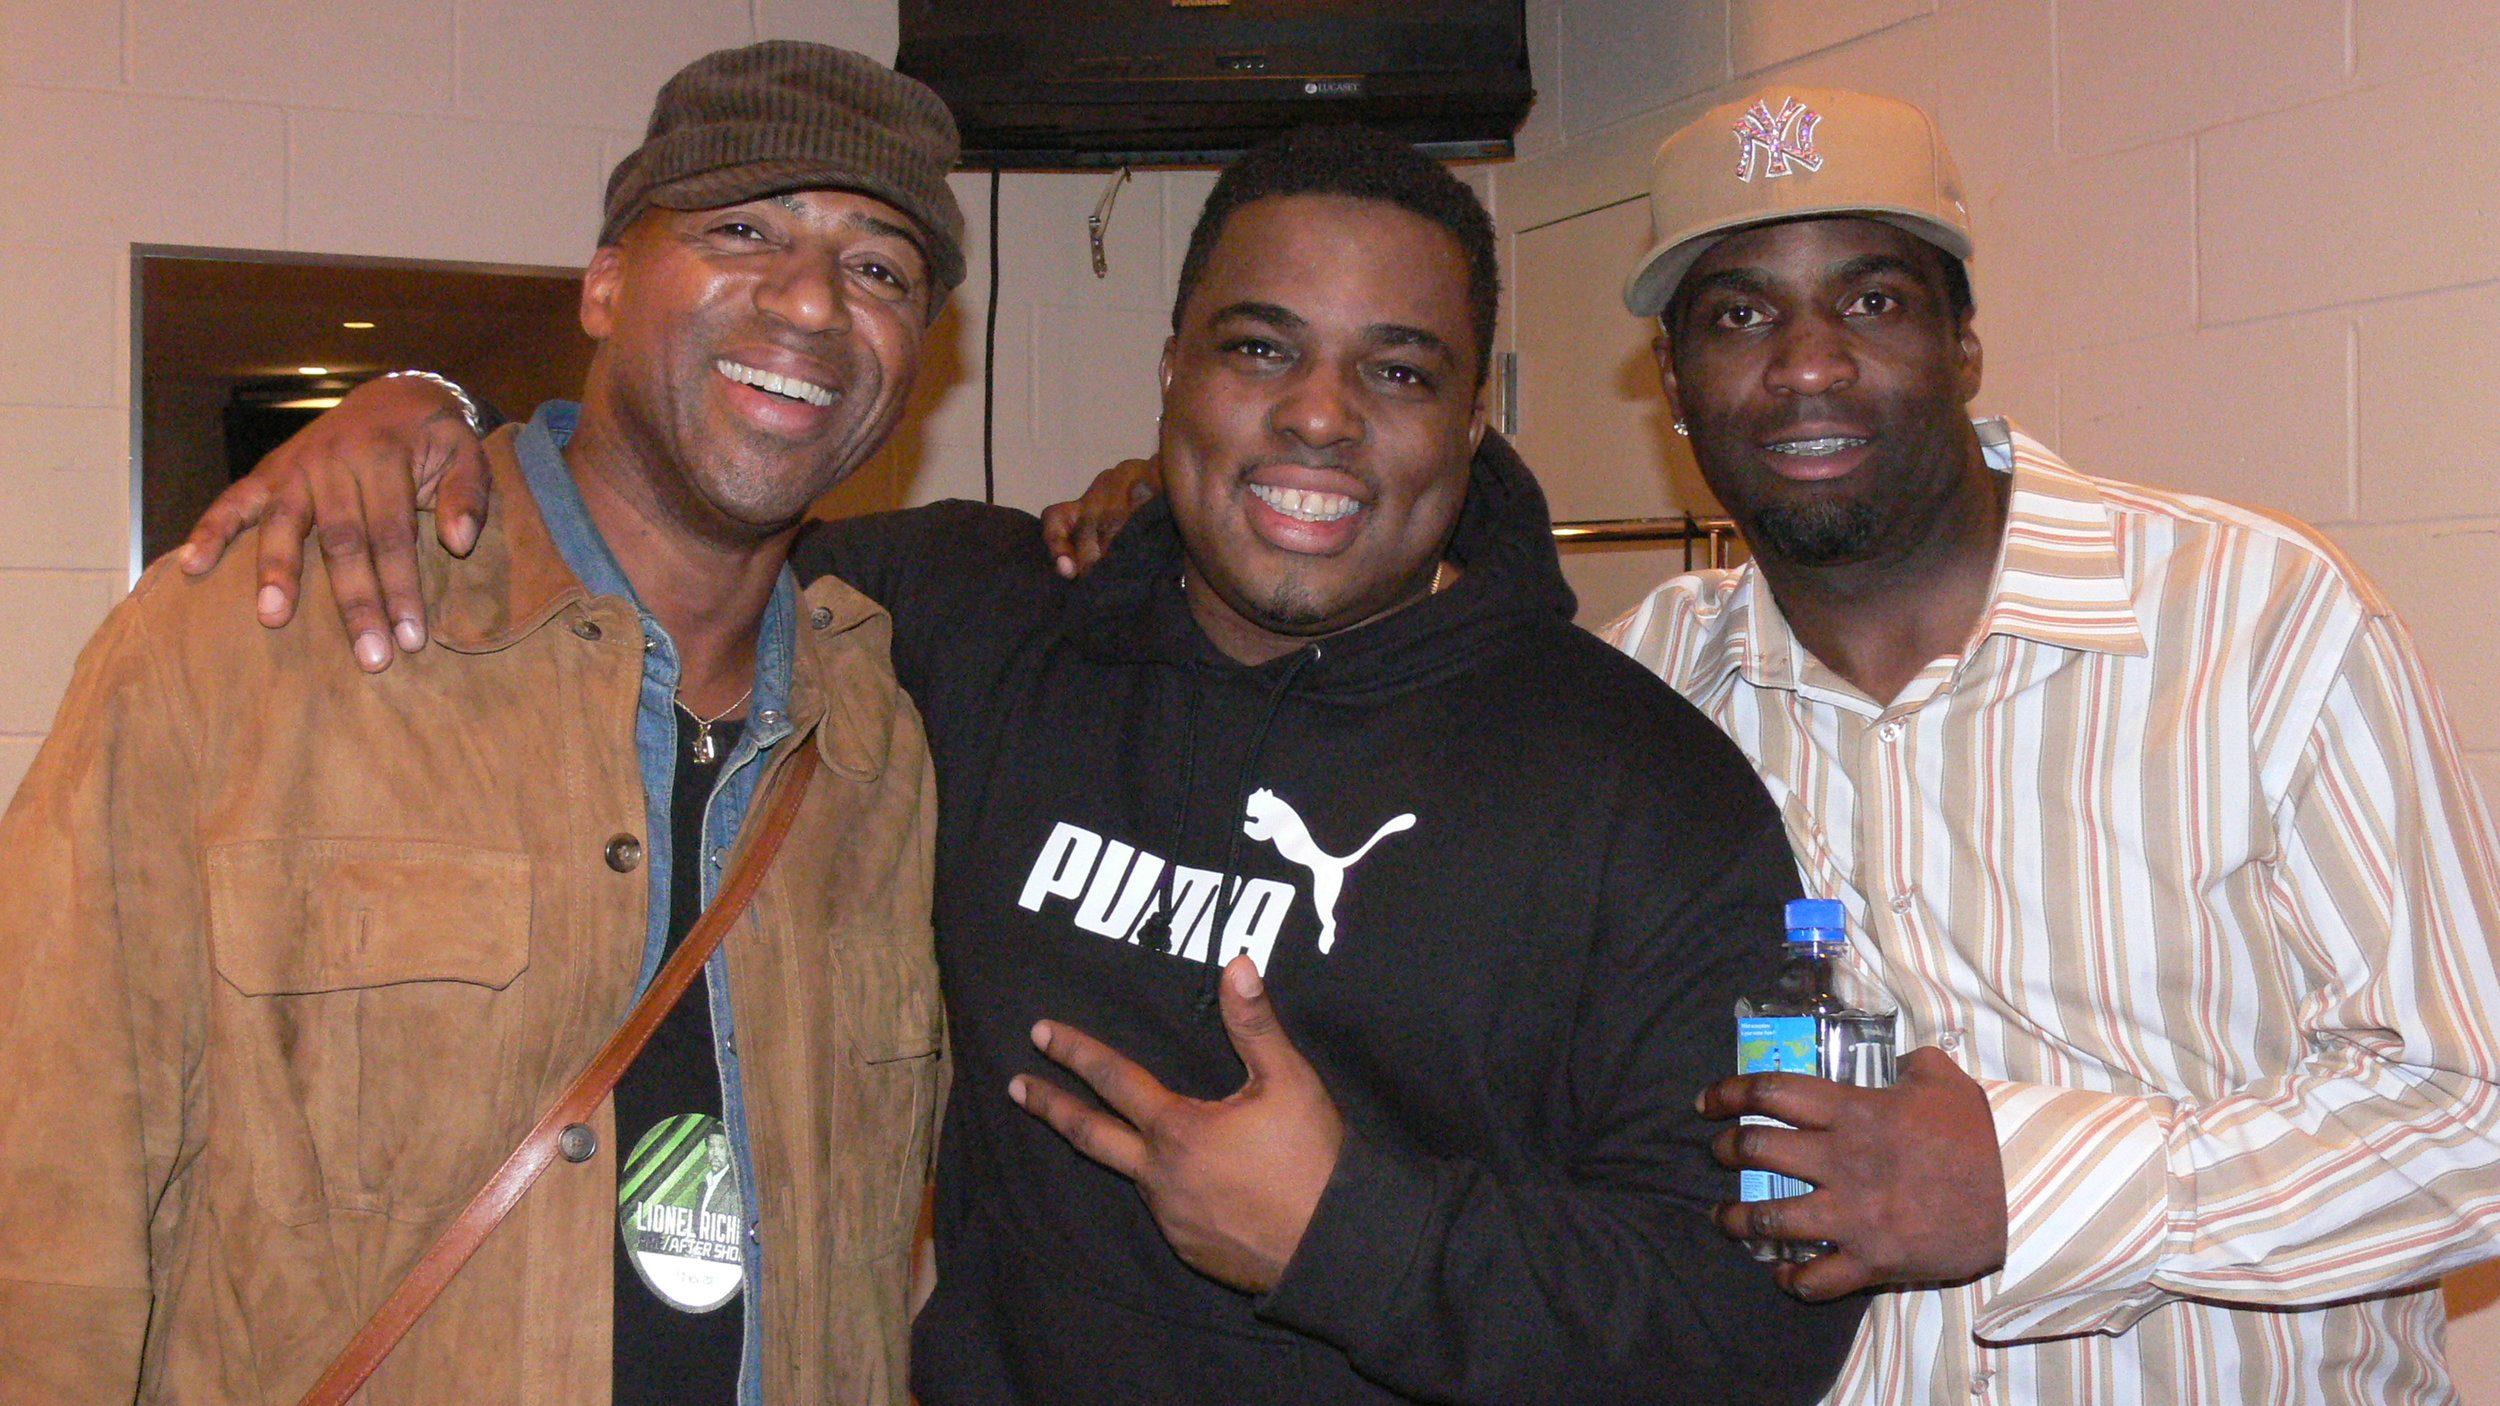 K. Rob, Chuckii Booker and D.O.A.